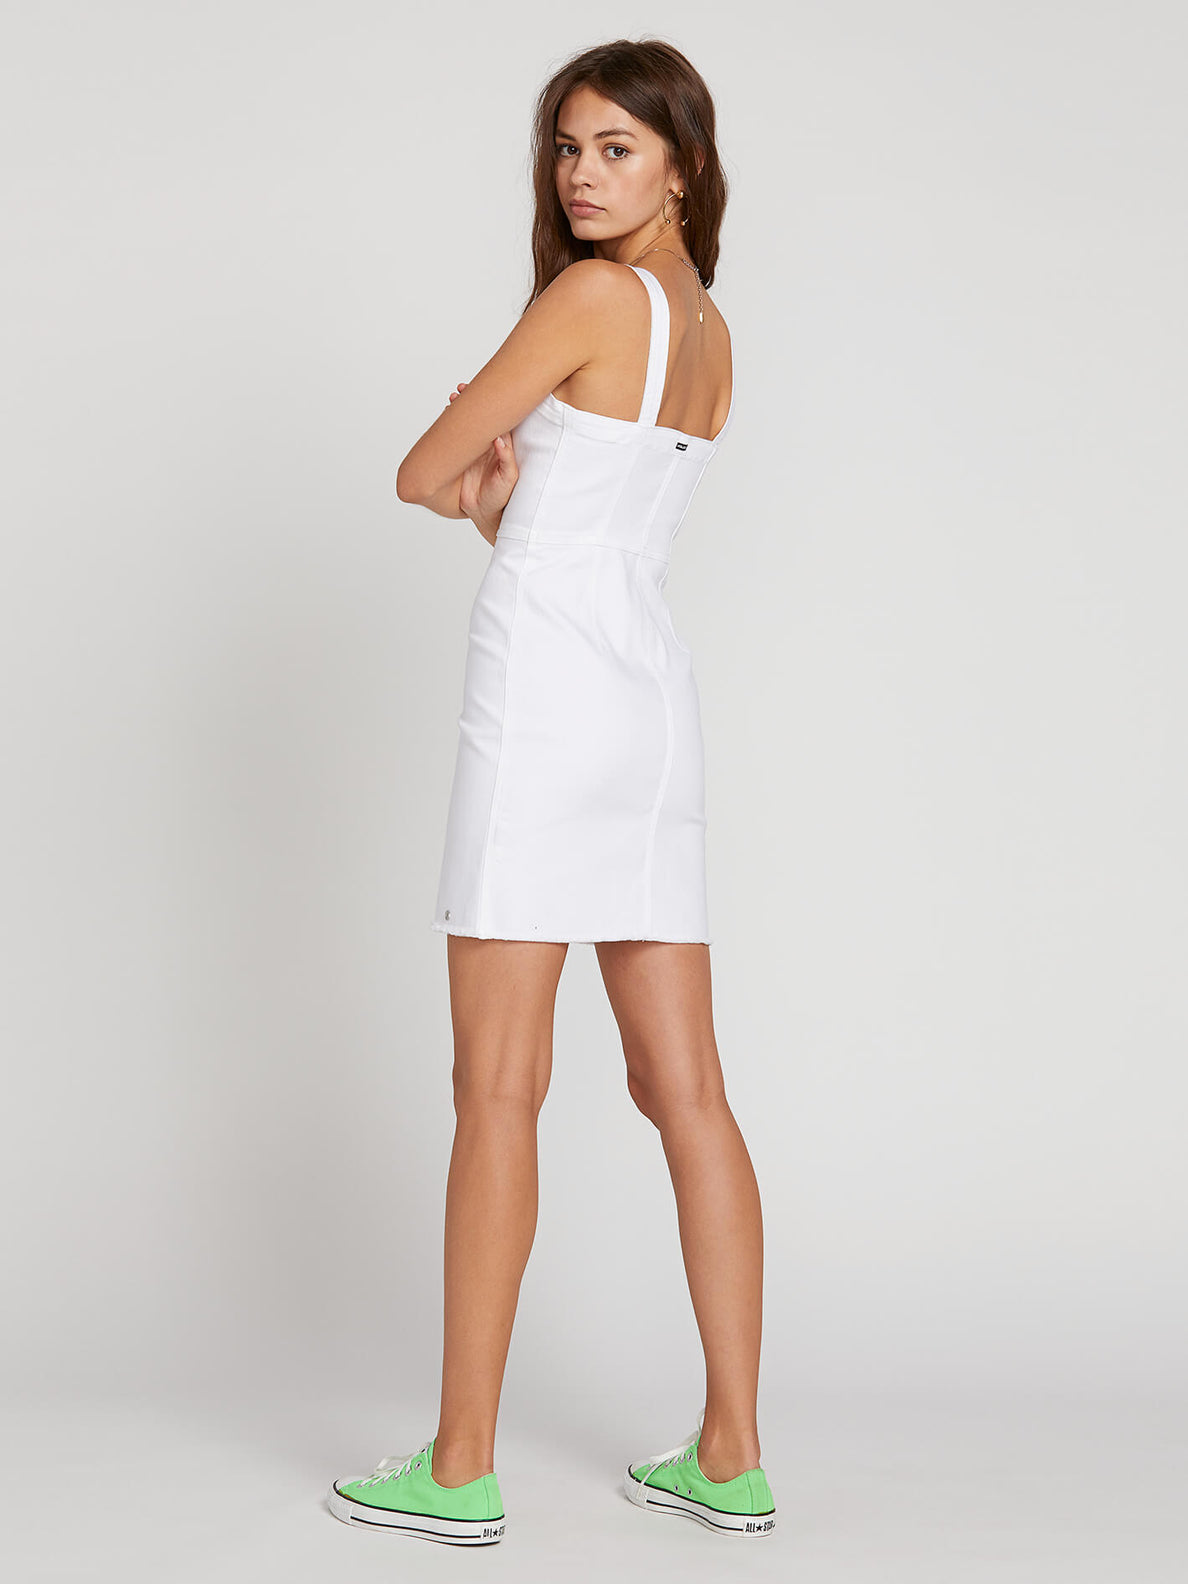 Vol Stone Dress In Paint White, Back View